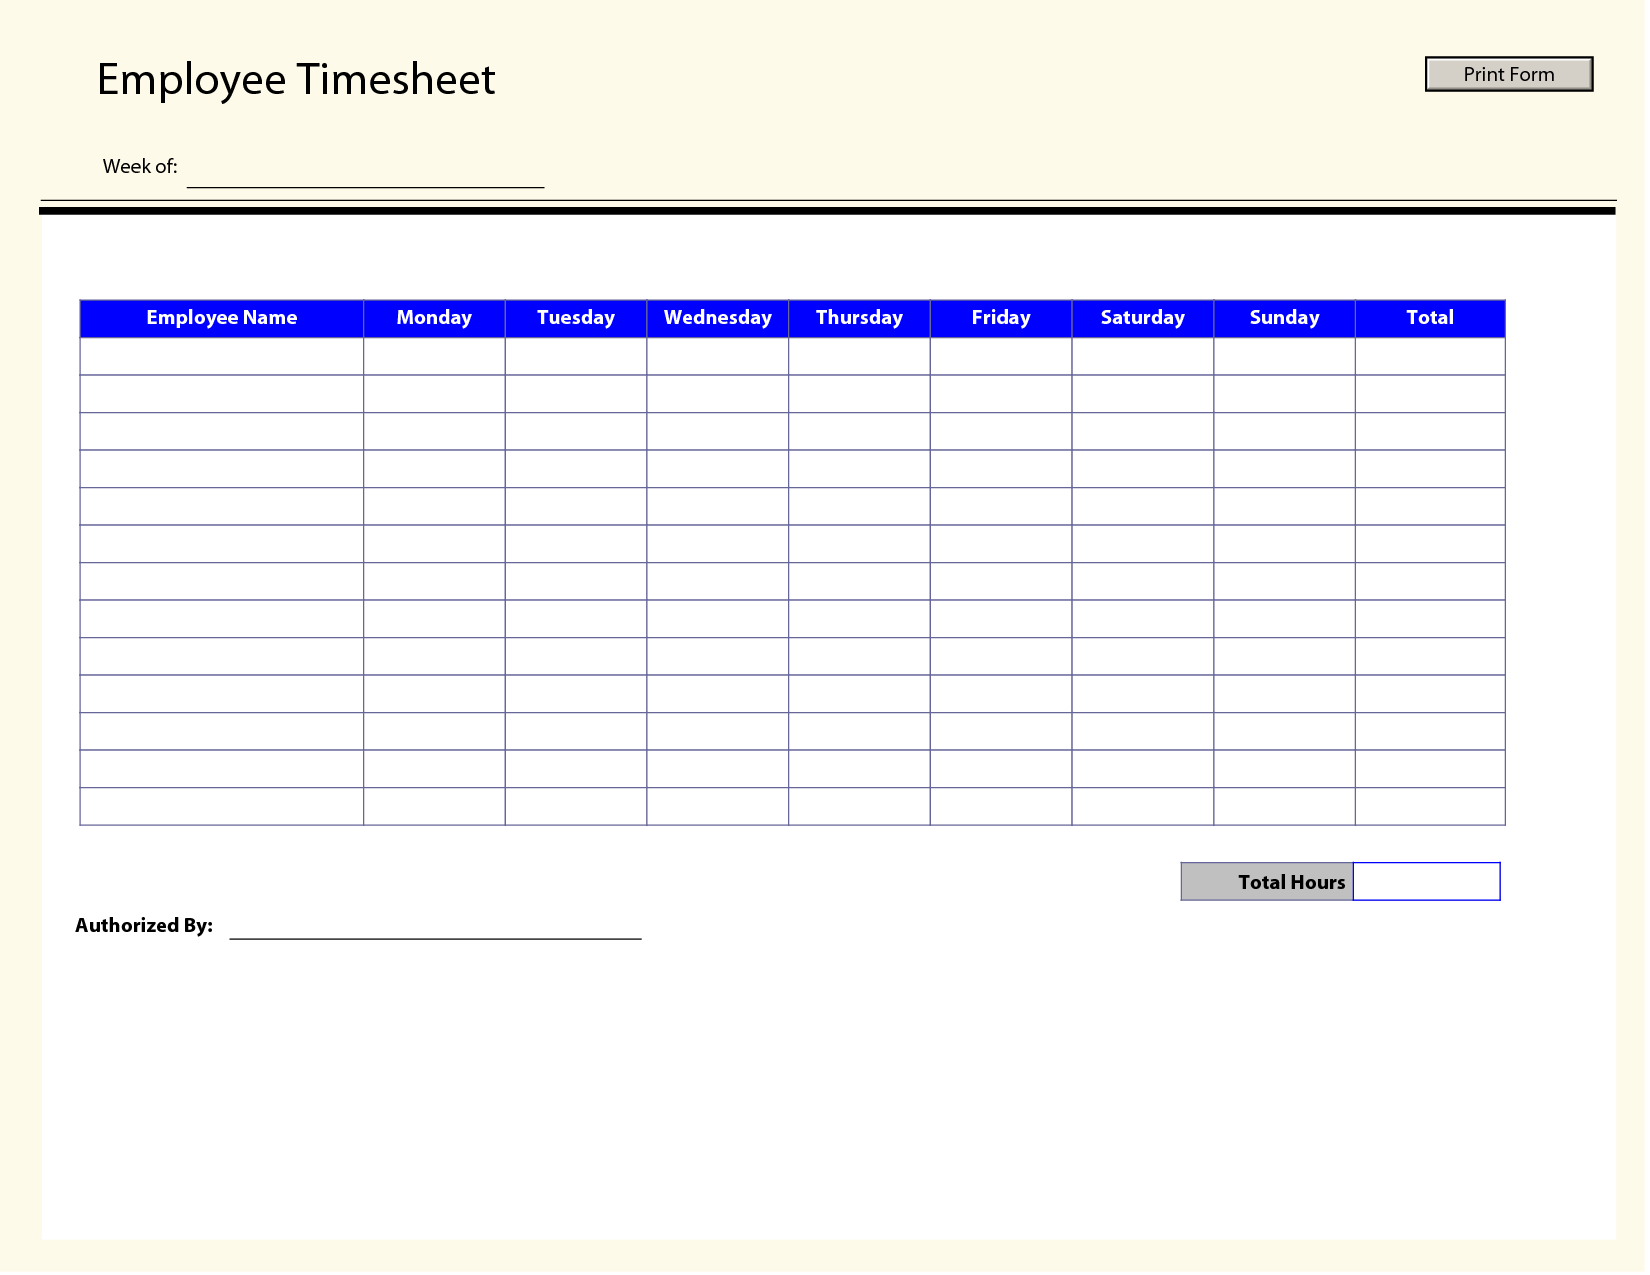 Printable Time Sheets  Free Printable Employee Timesheets